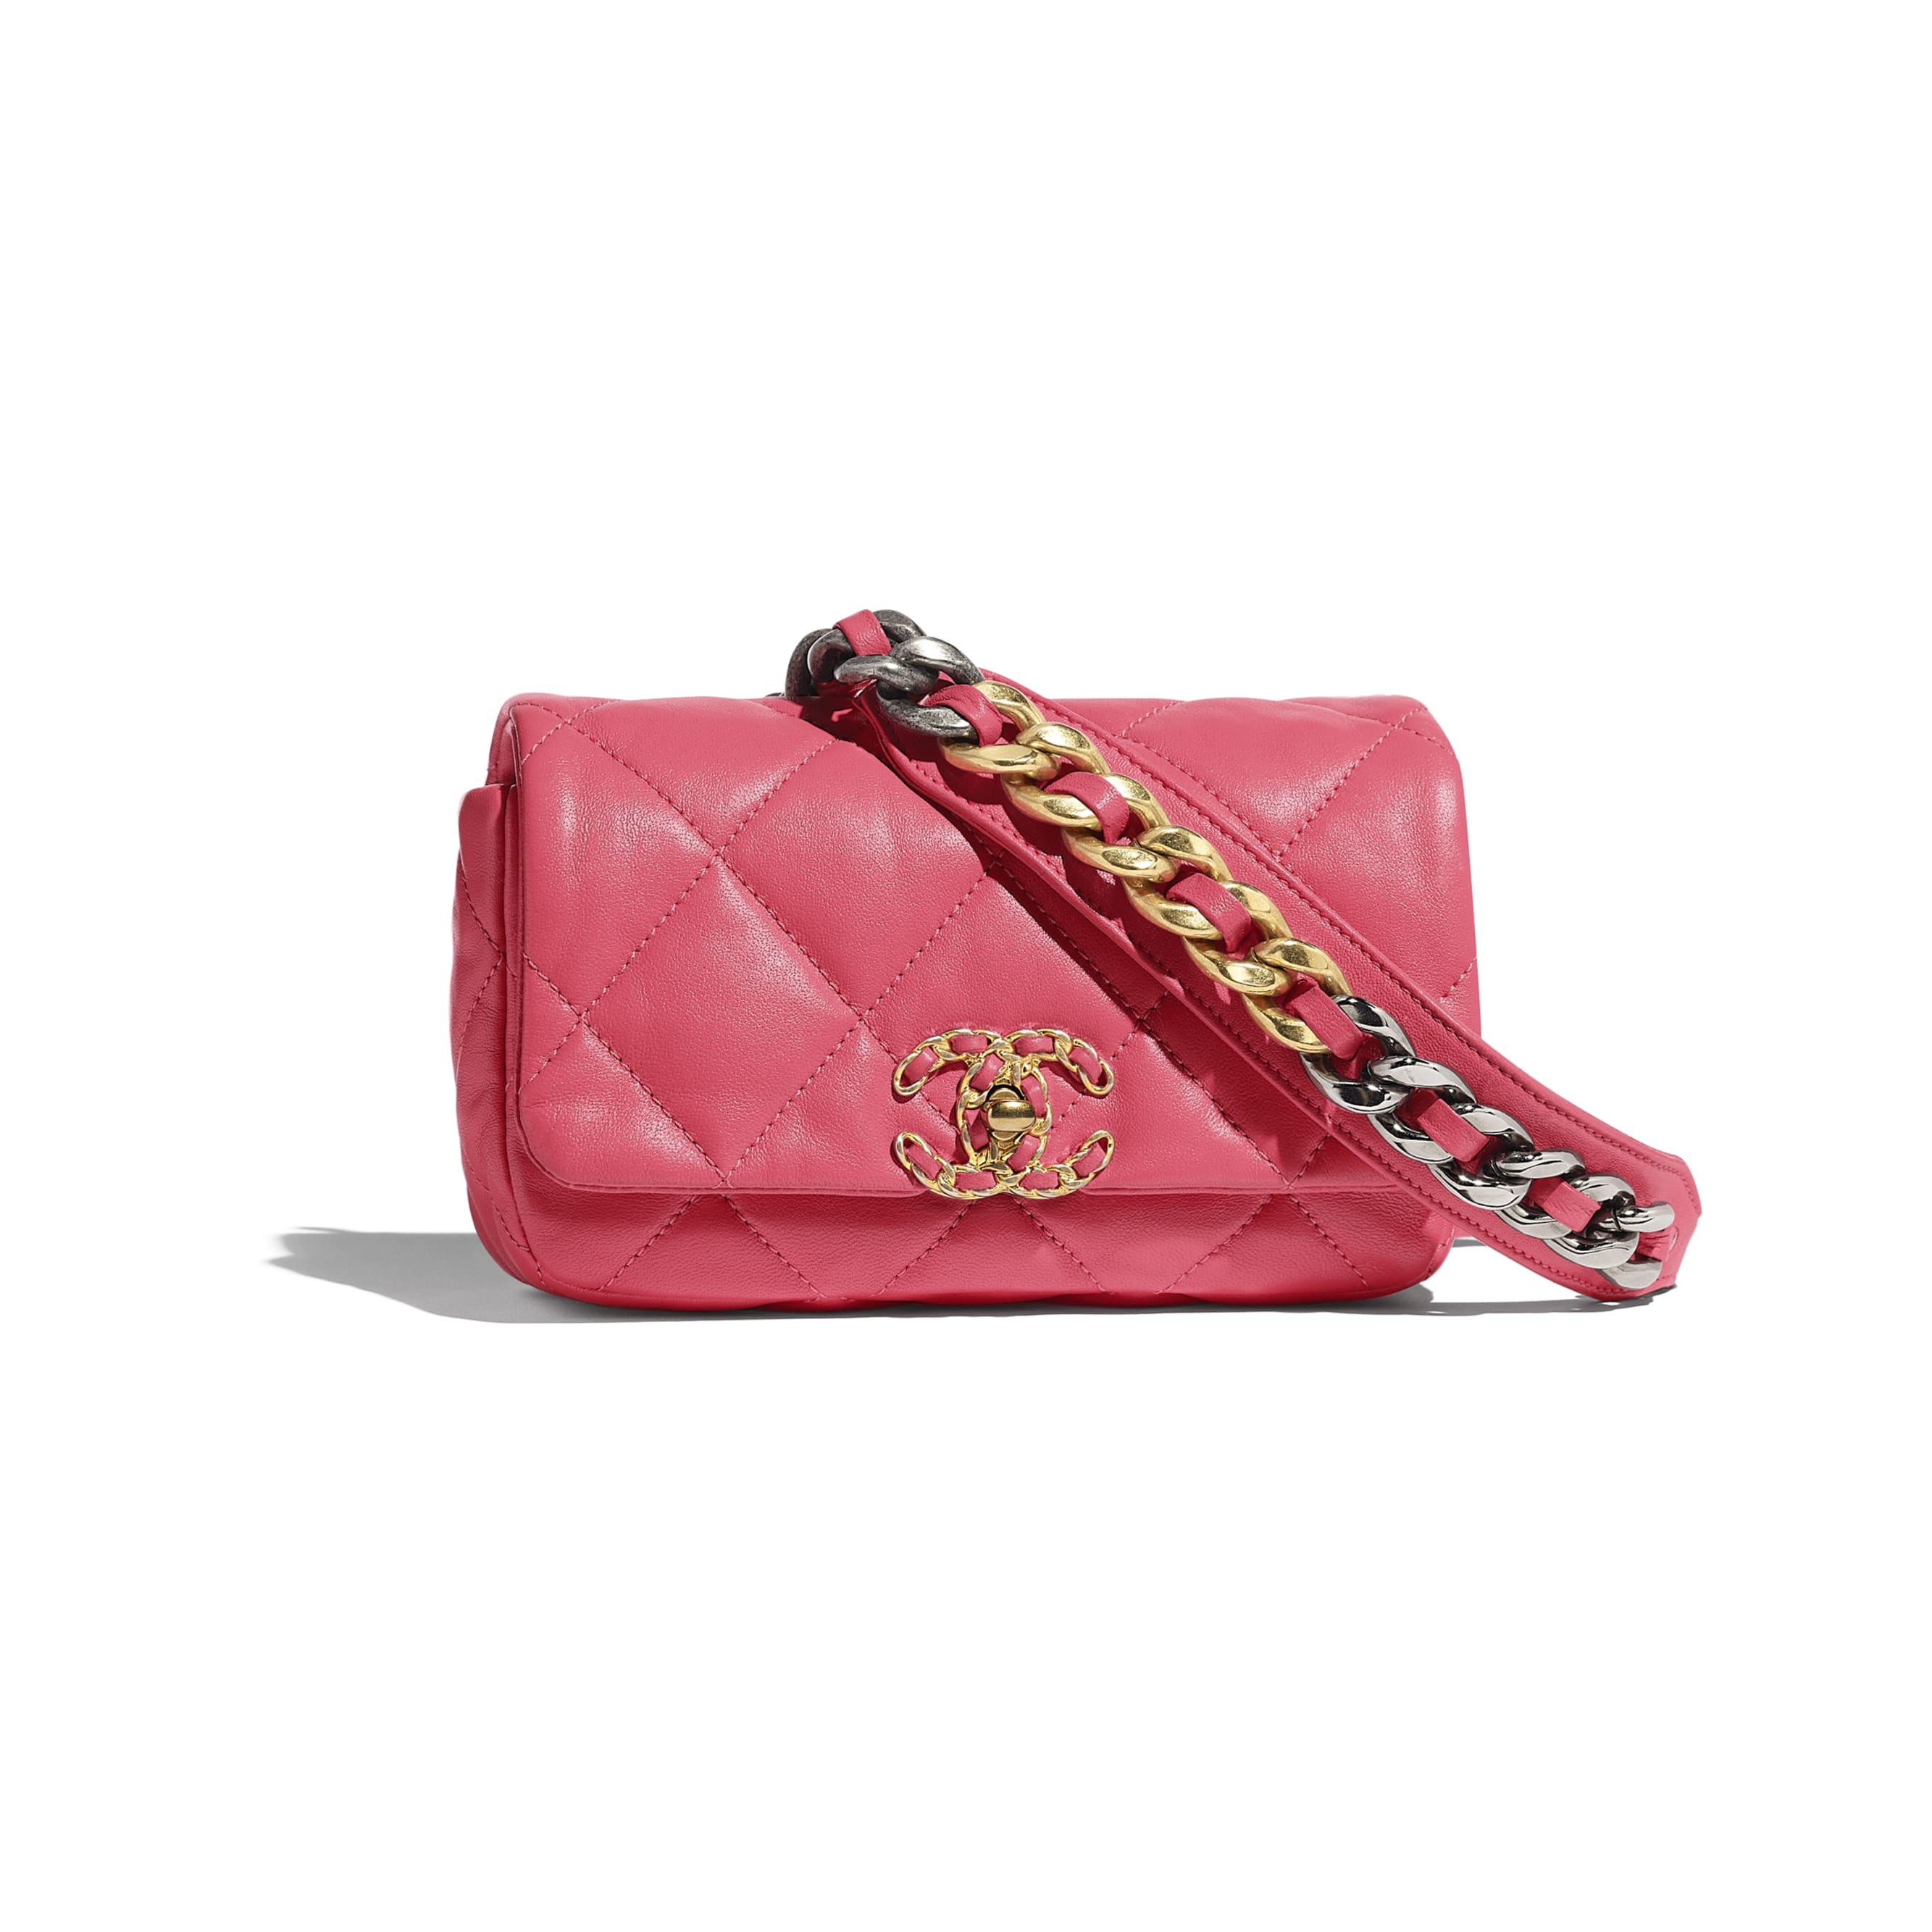 CHANEL 19 Waist Bag - Pink - Lambskin, Gold-Tone, Silver-Tone & Ruthenium-Finish Metal - CHANEL - Default view - see standard sized version